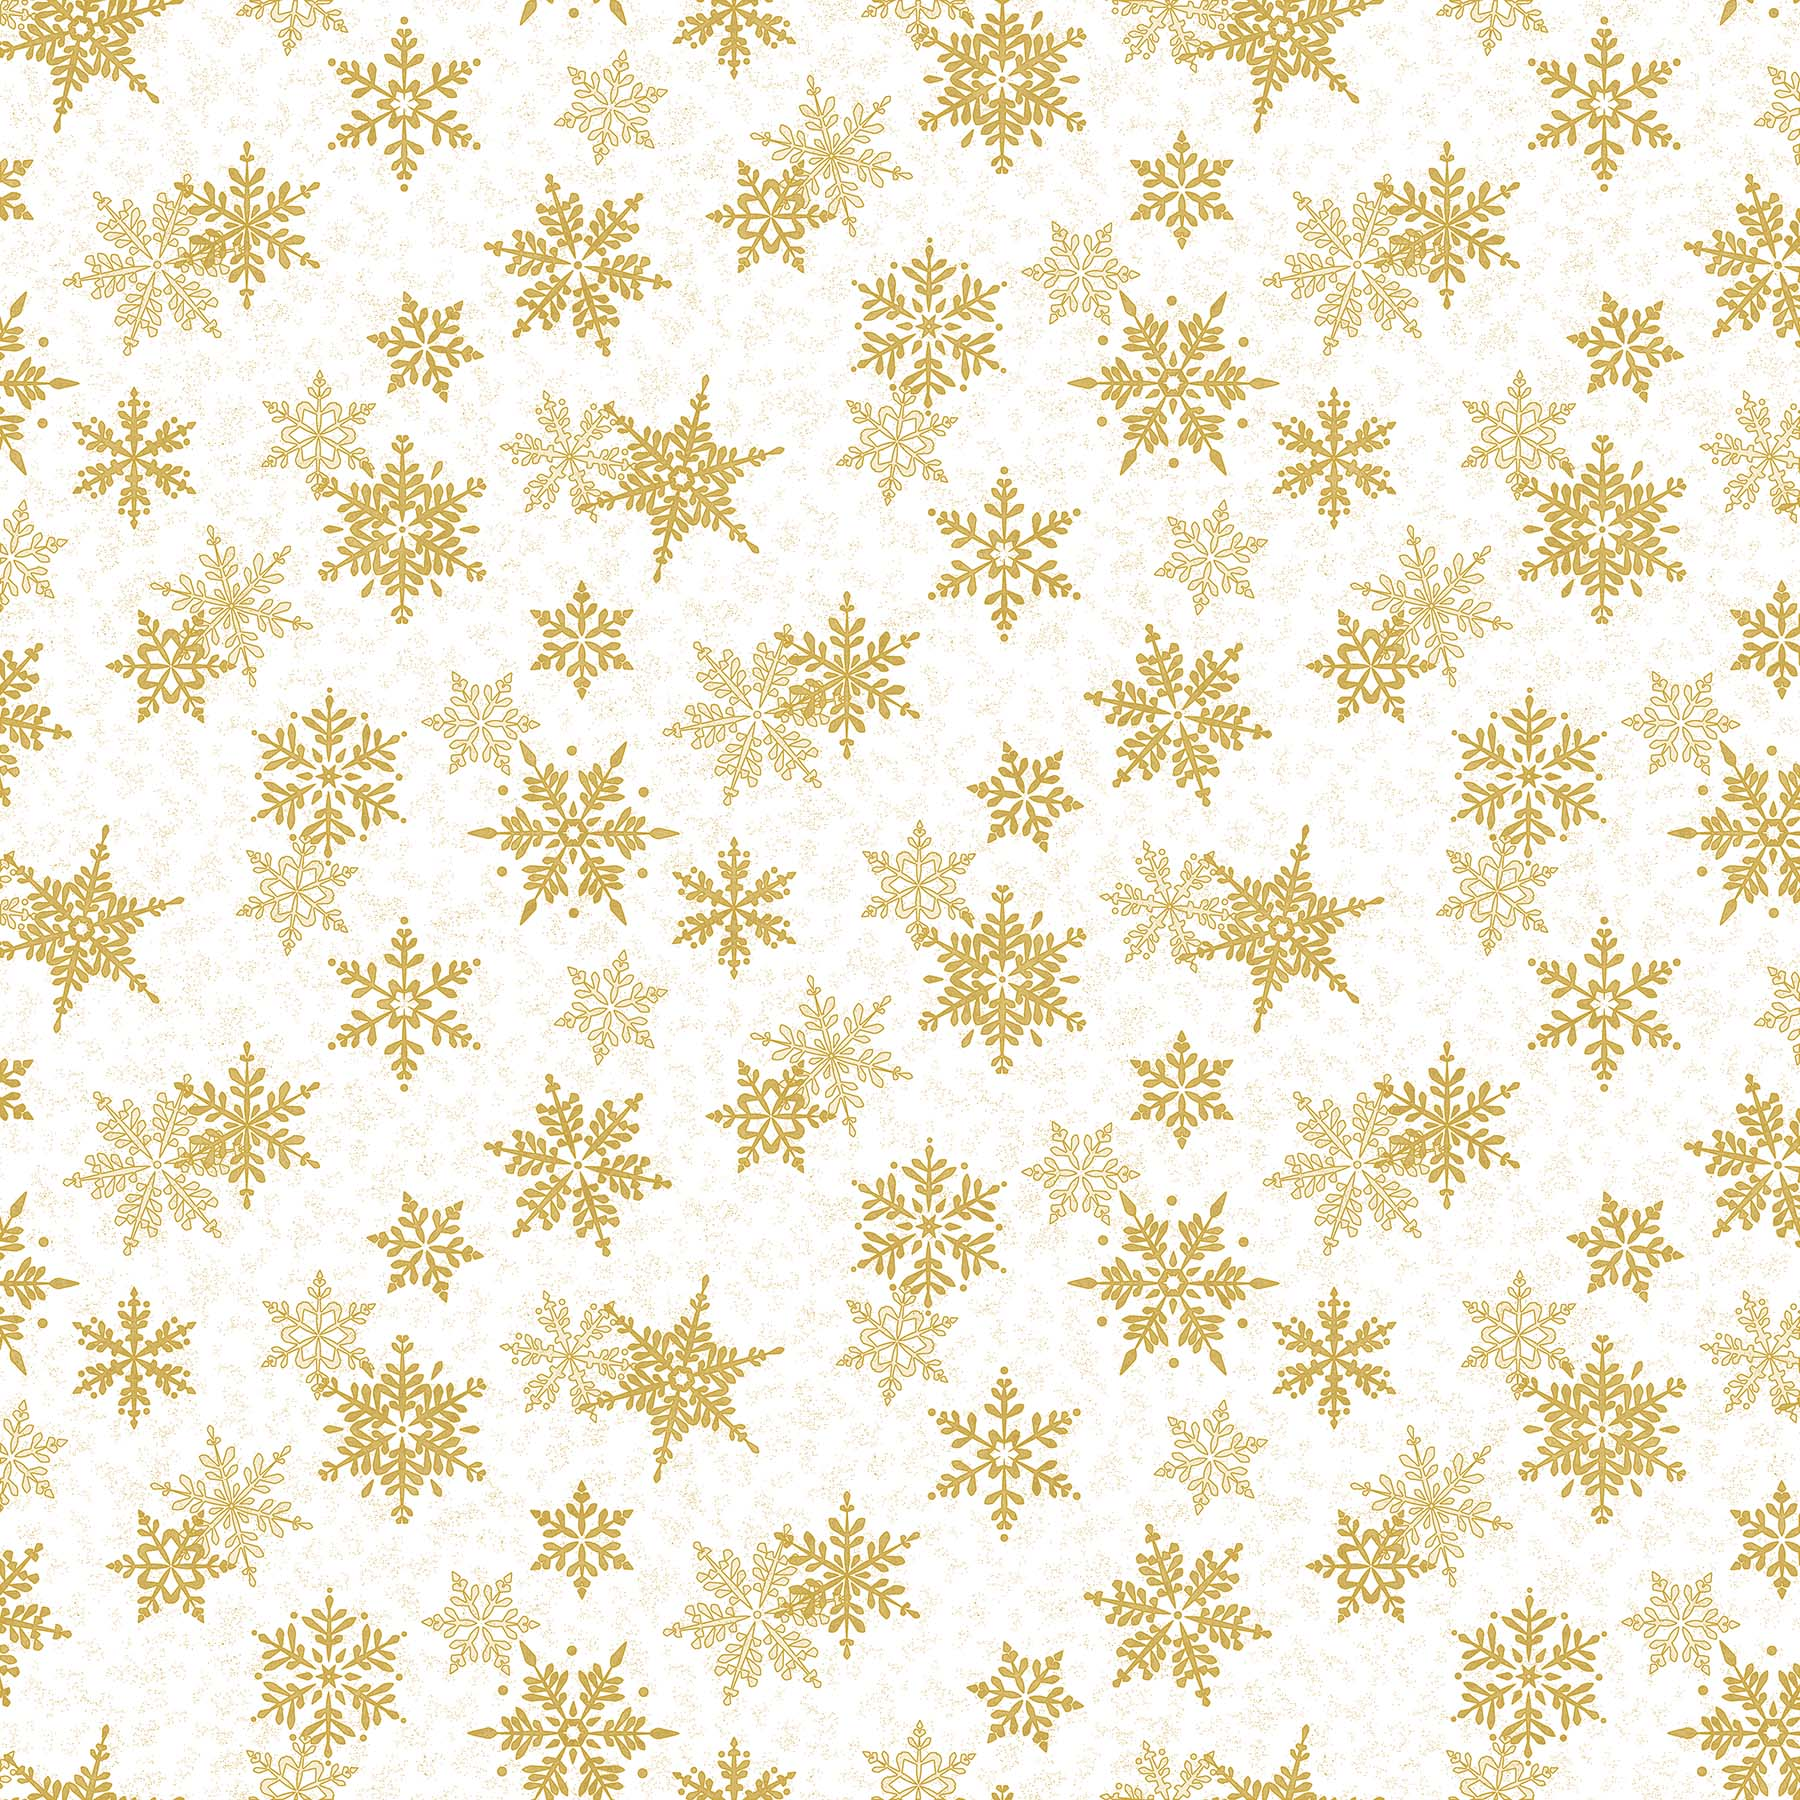 SHIMMER FROST WHITE GOLD LARGE SNOWFLAKE